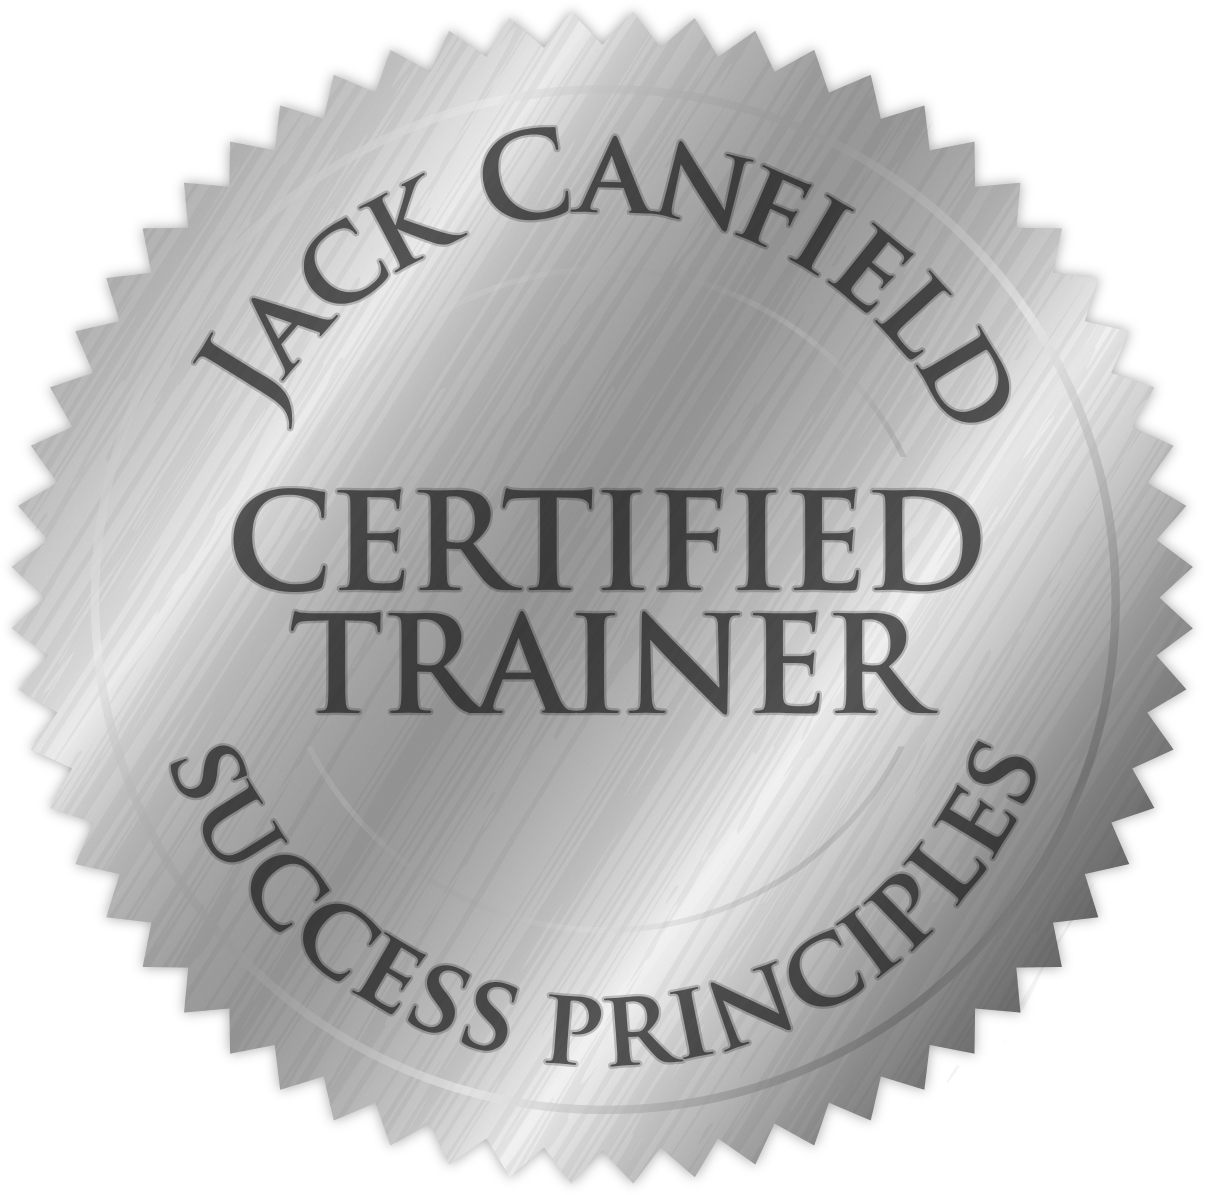 Jack Canfield Certified - Web